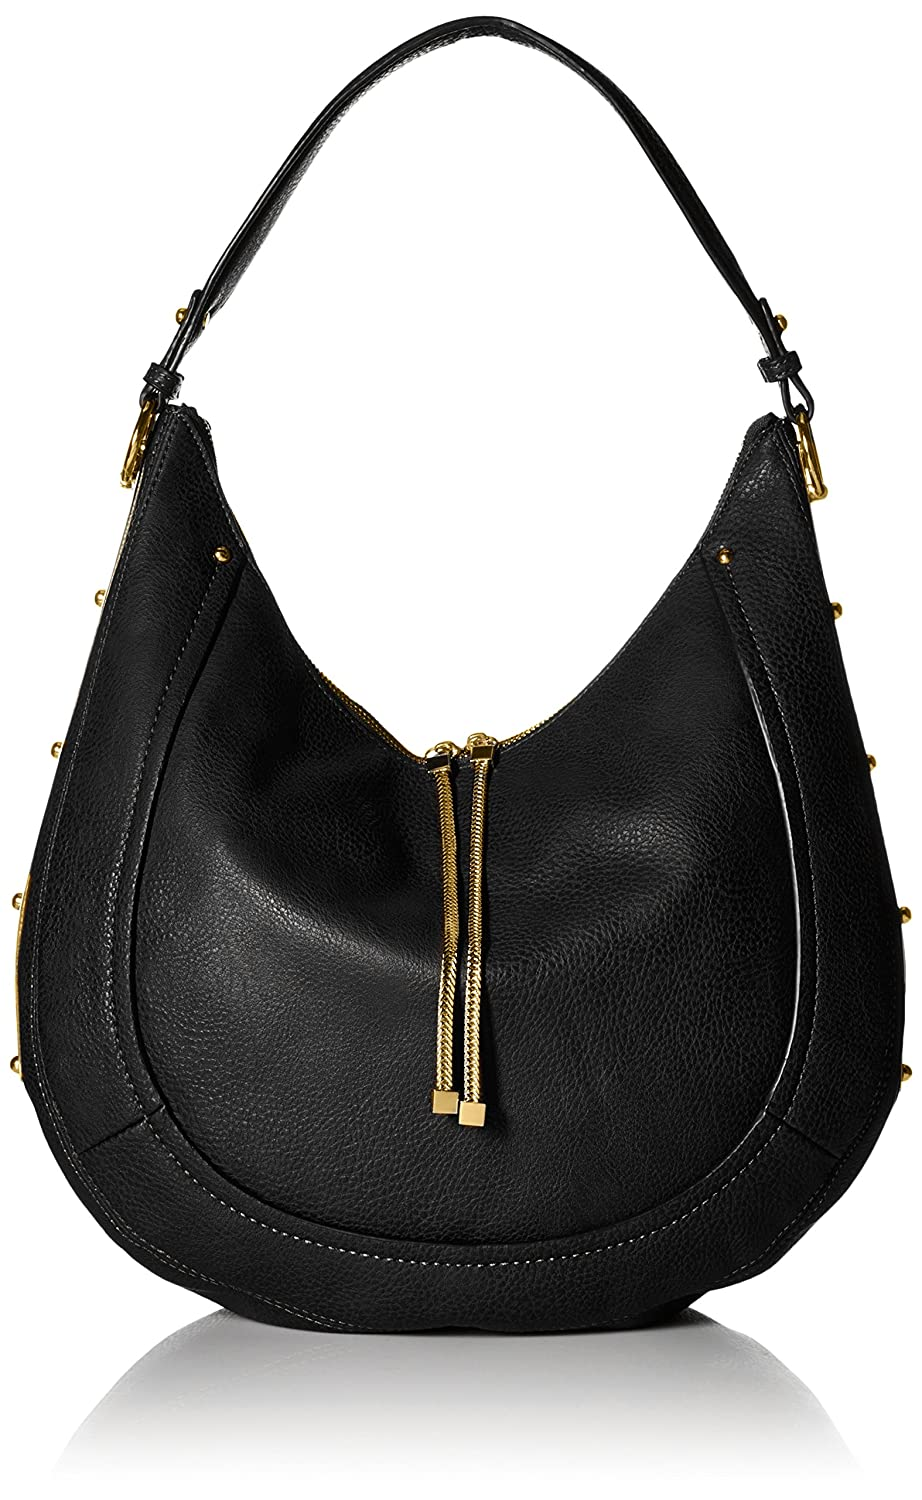 Aldo Pescate Hobo Bag, Black, One Size: Handbags: Amazon.com